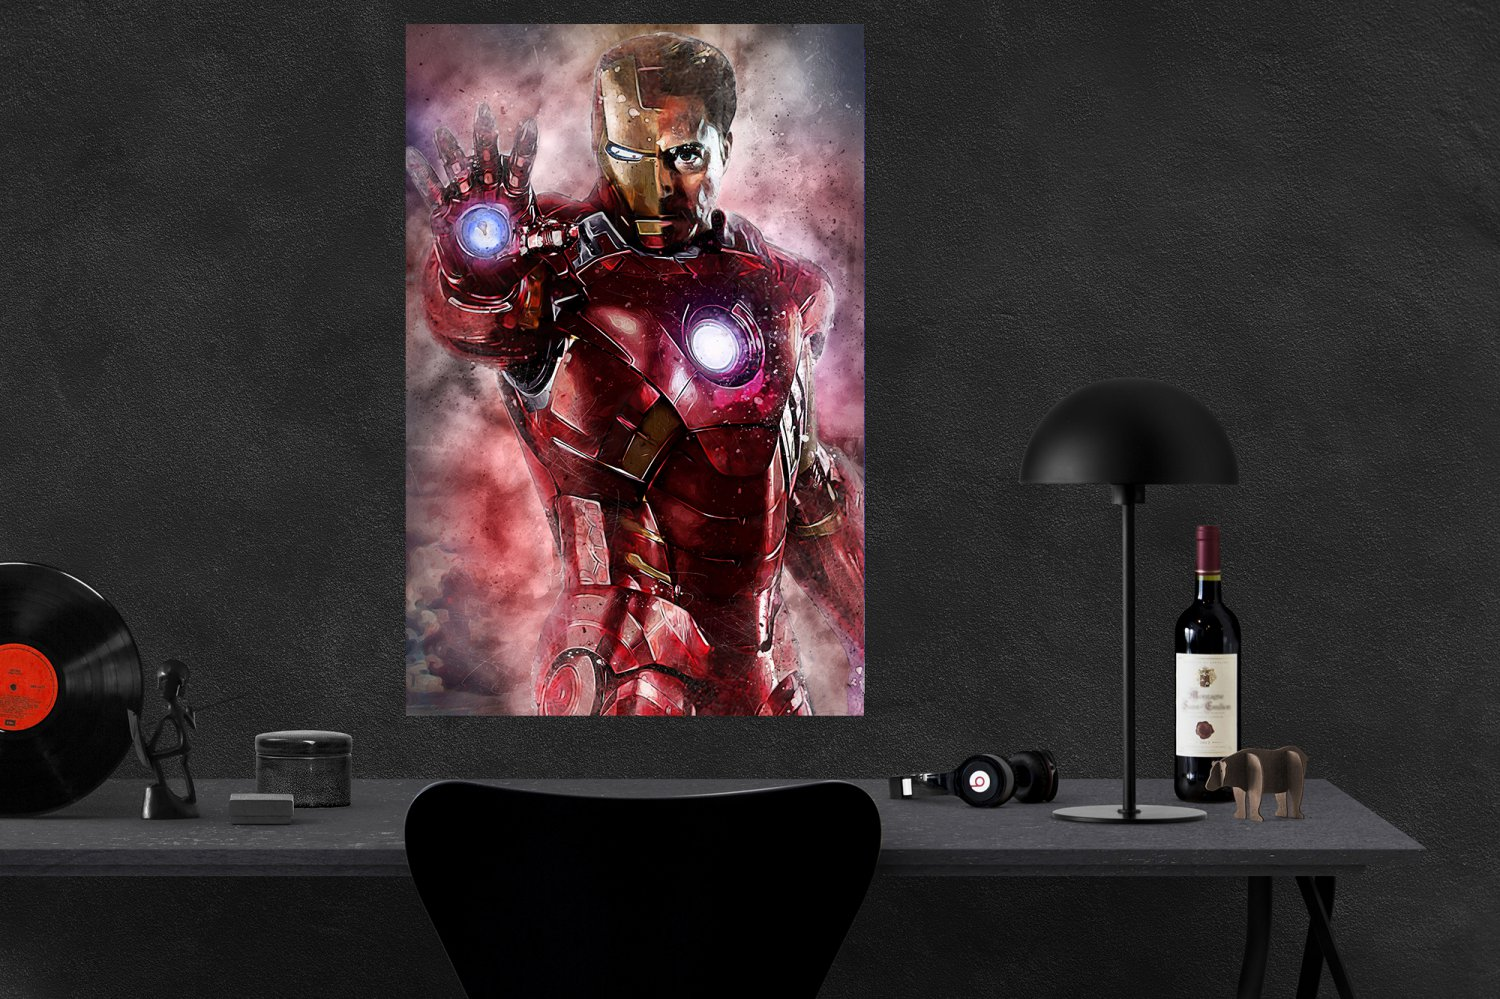 Avengers Endgame, Iron Man, Tony Stark, Robert Downey Jr,  24x35 inches Canvas Print